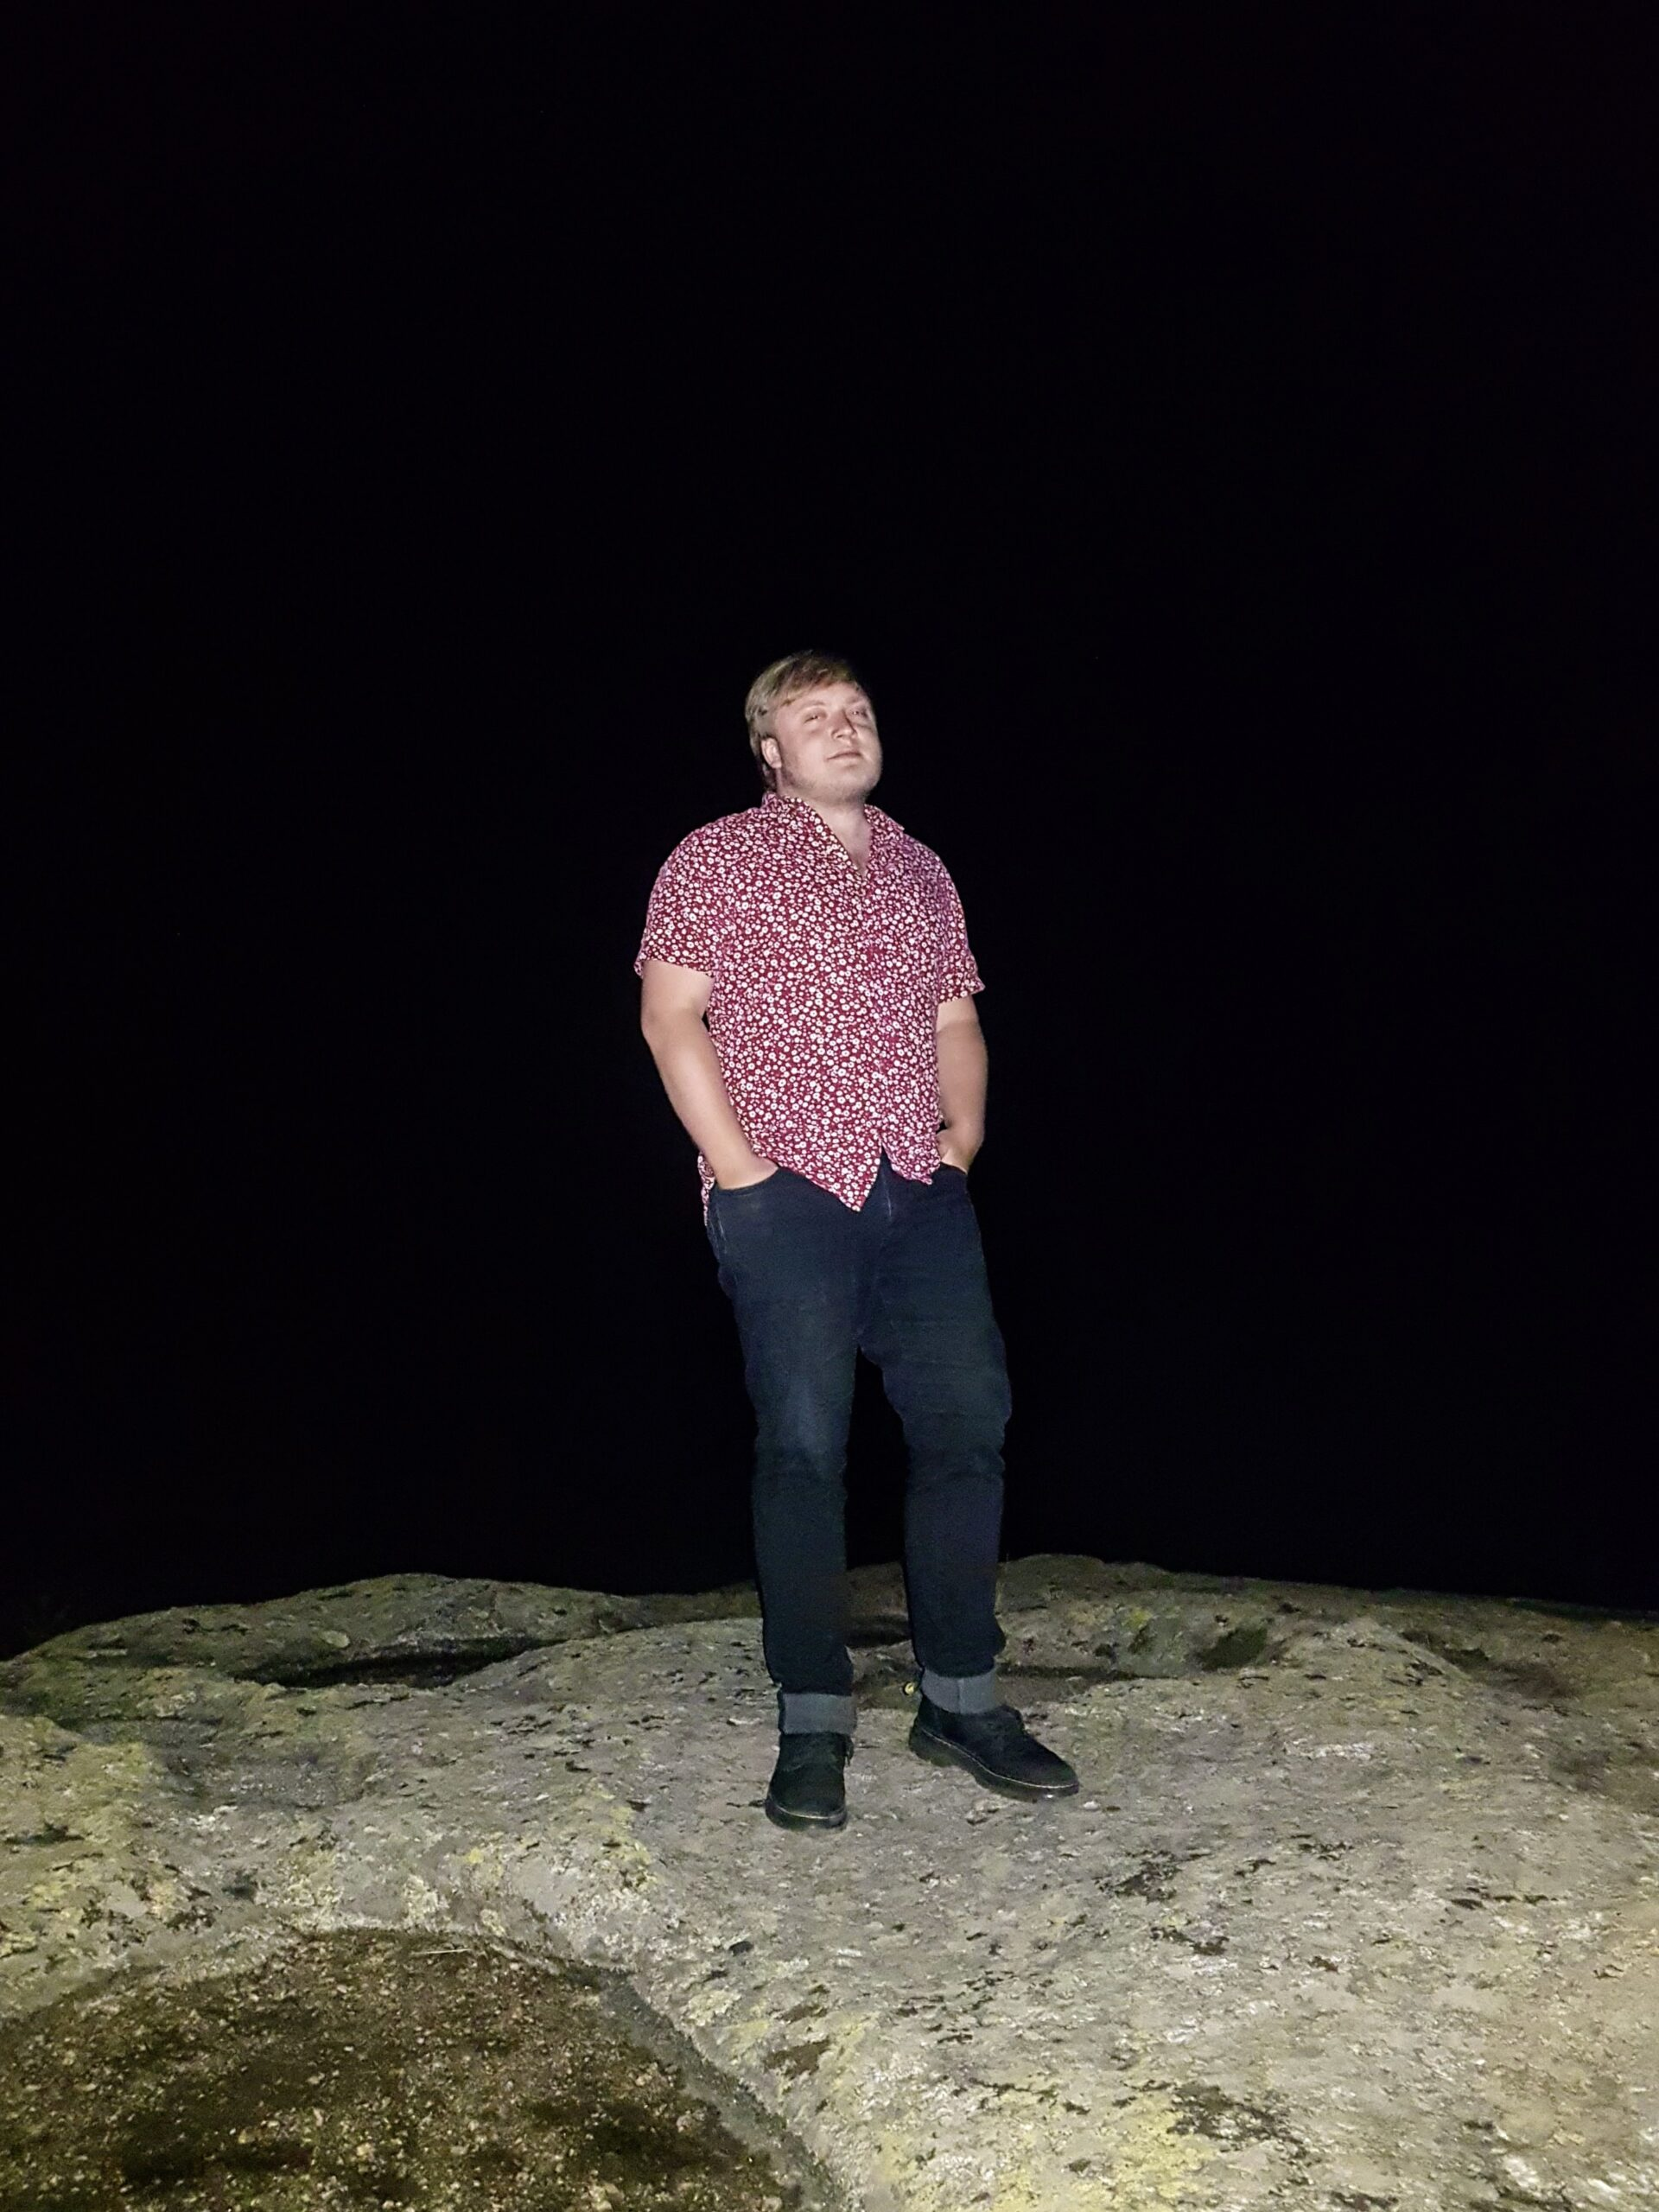 I stand on a rock in the darkness.